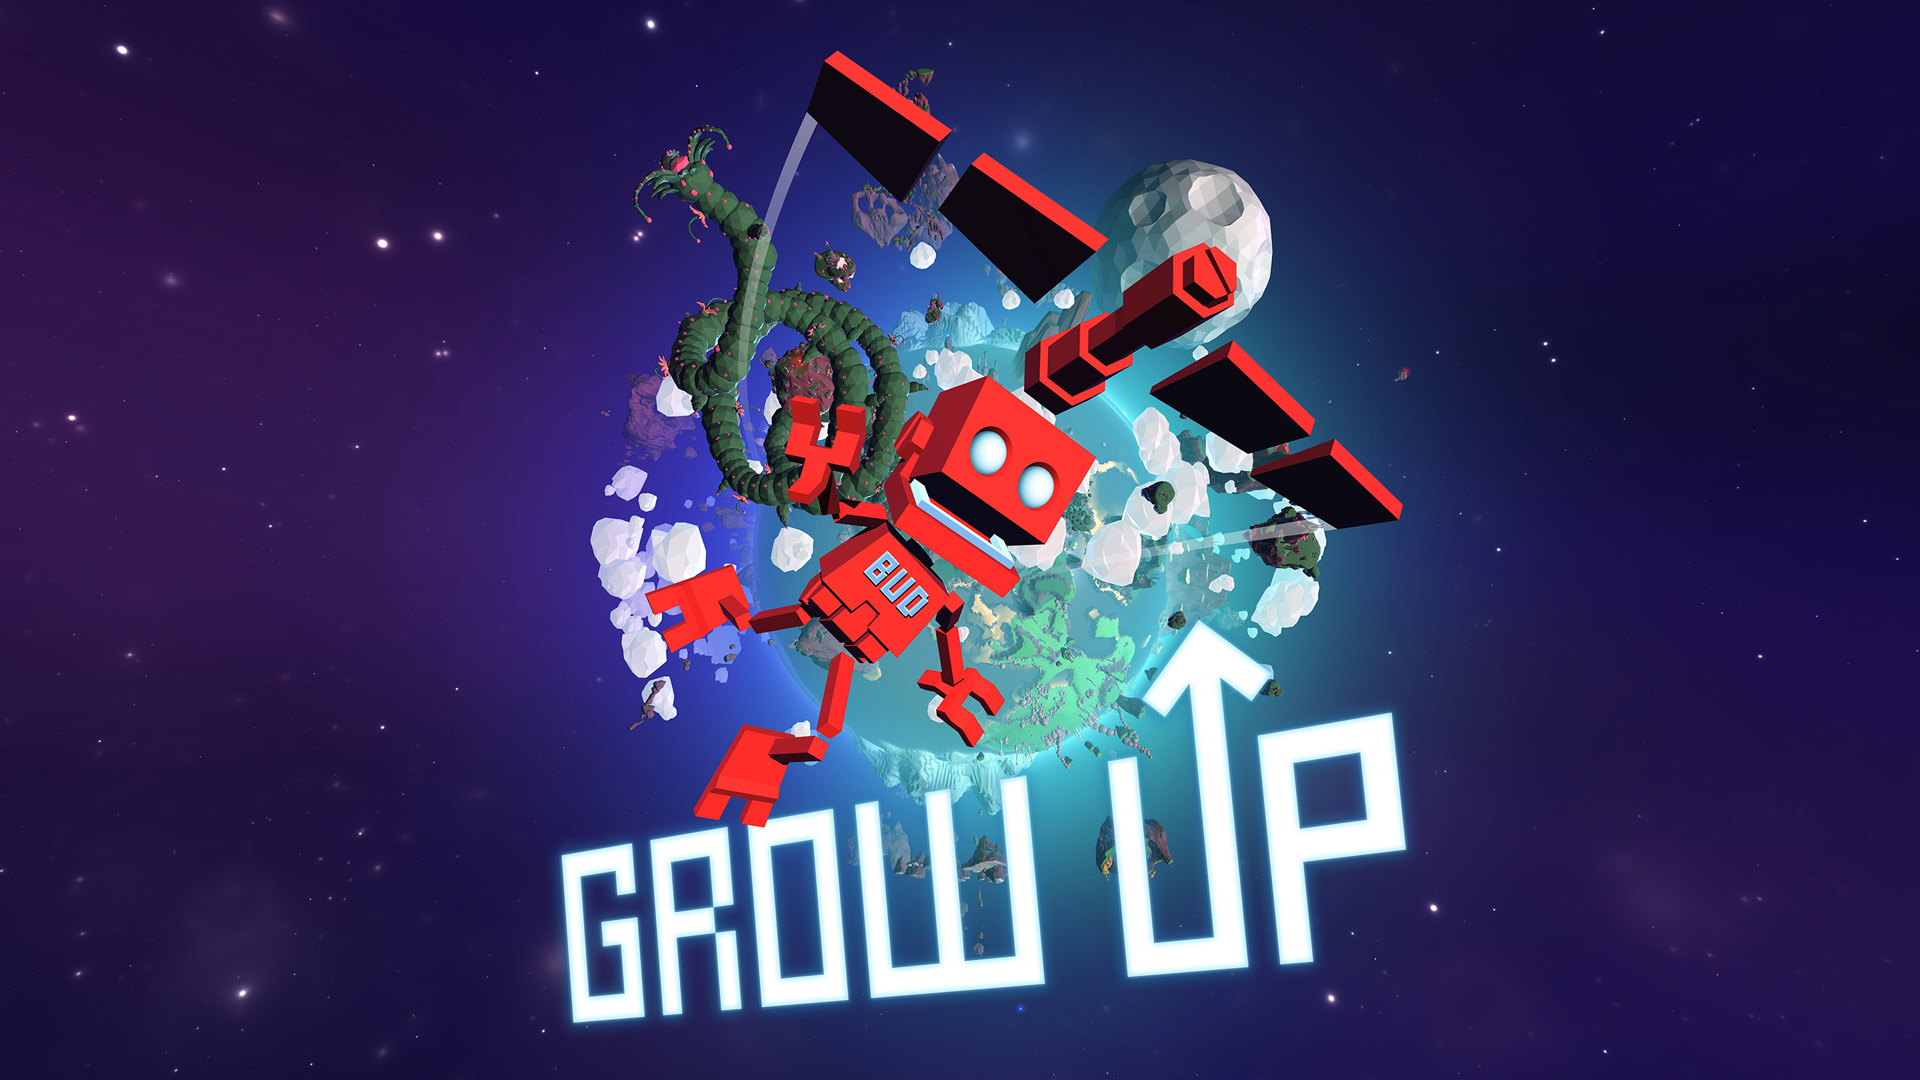 1920x1200 grow up game 1080p resolution hd 4k wallpapers images backgrounds photos and pictures - Games hd wallpapers 1920x1200 ...